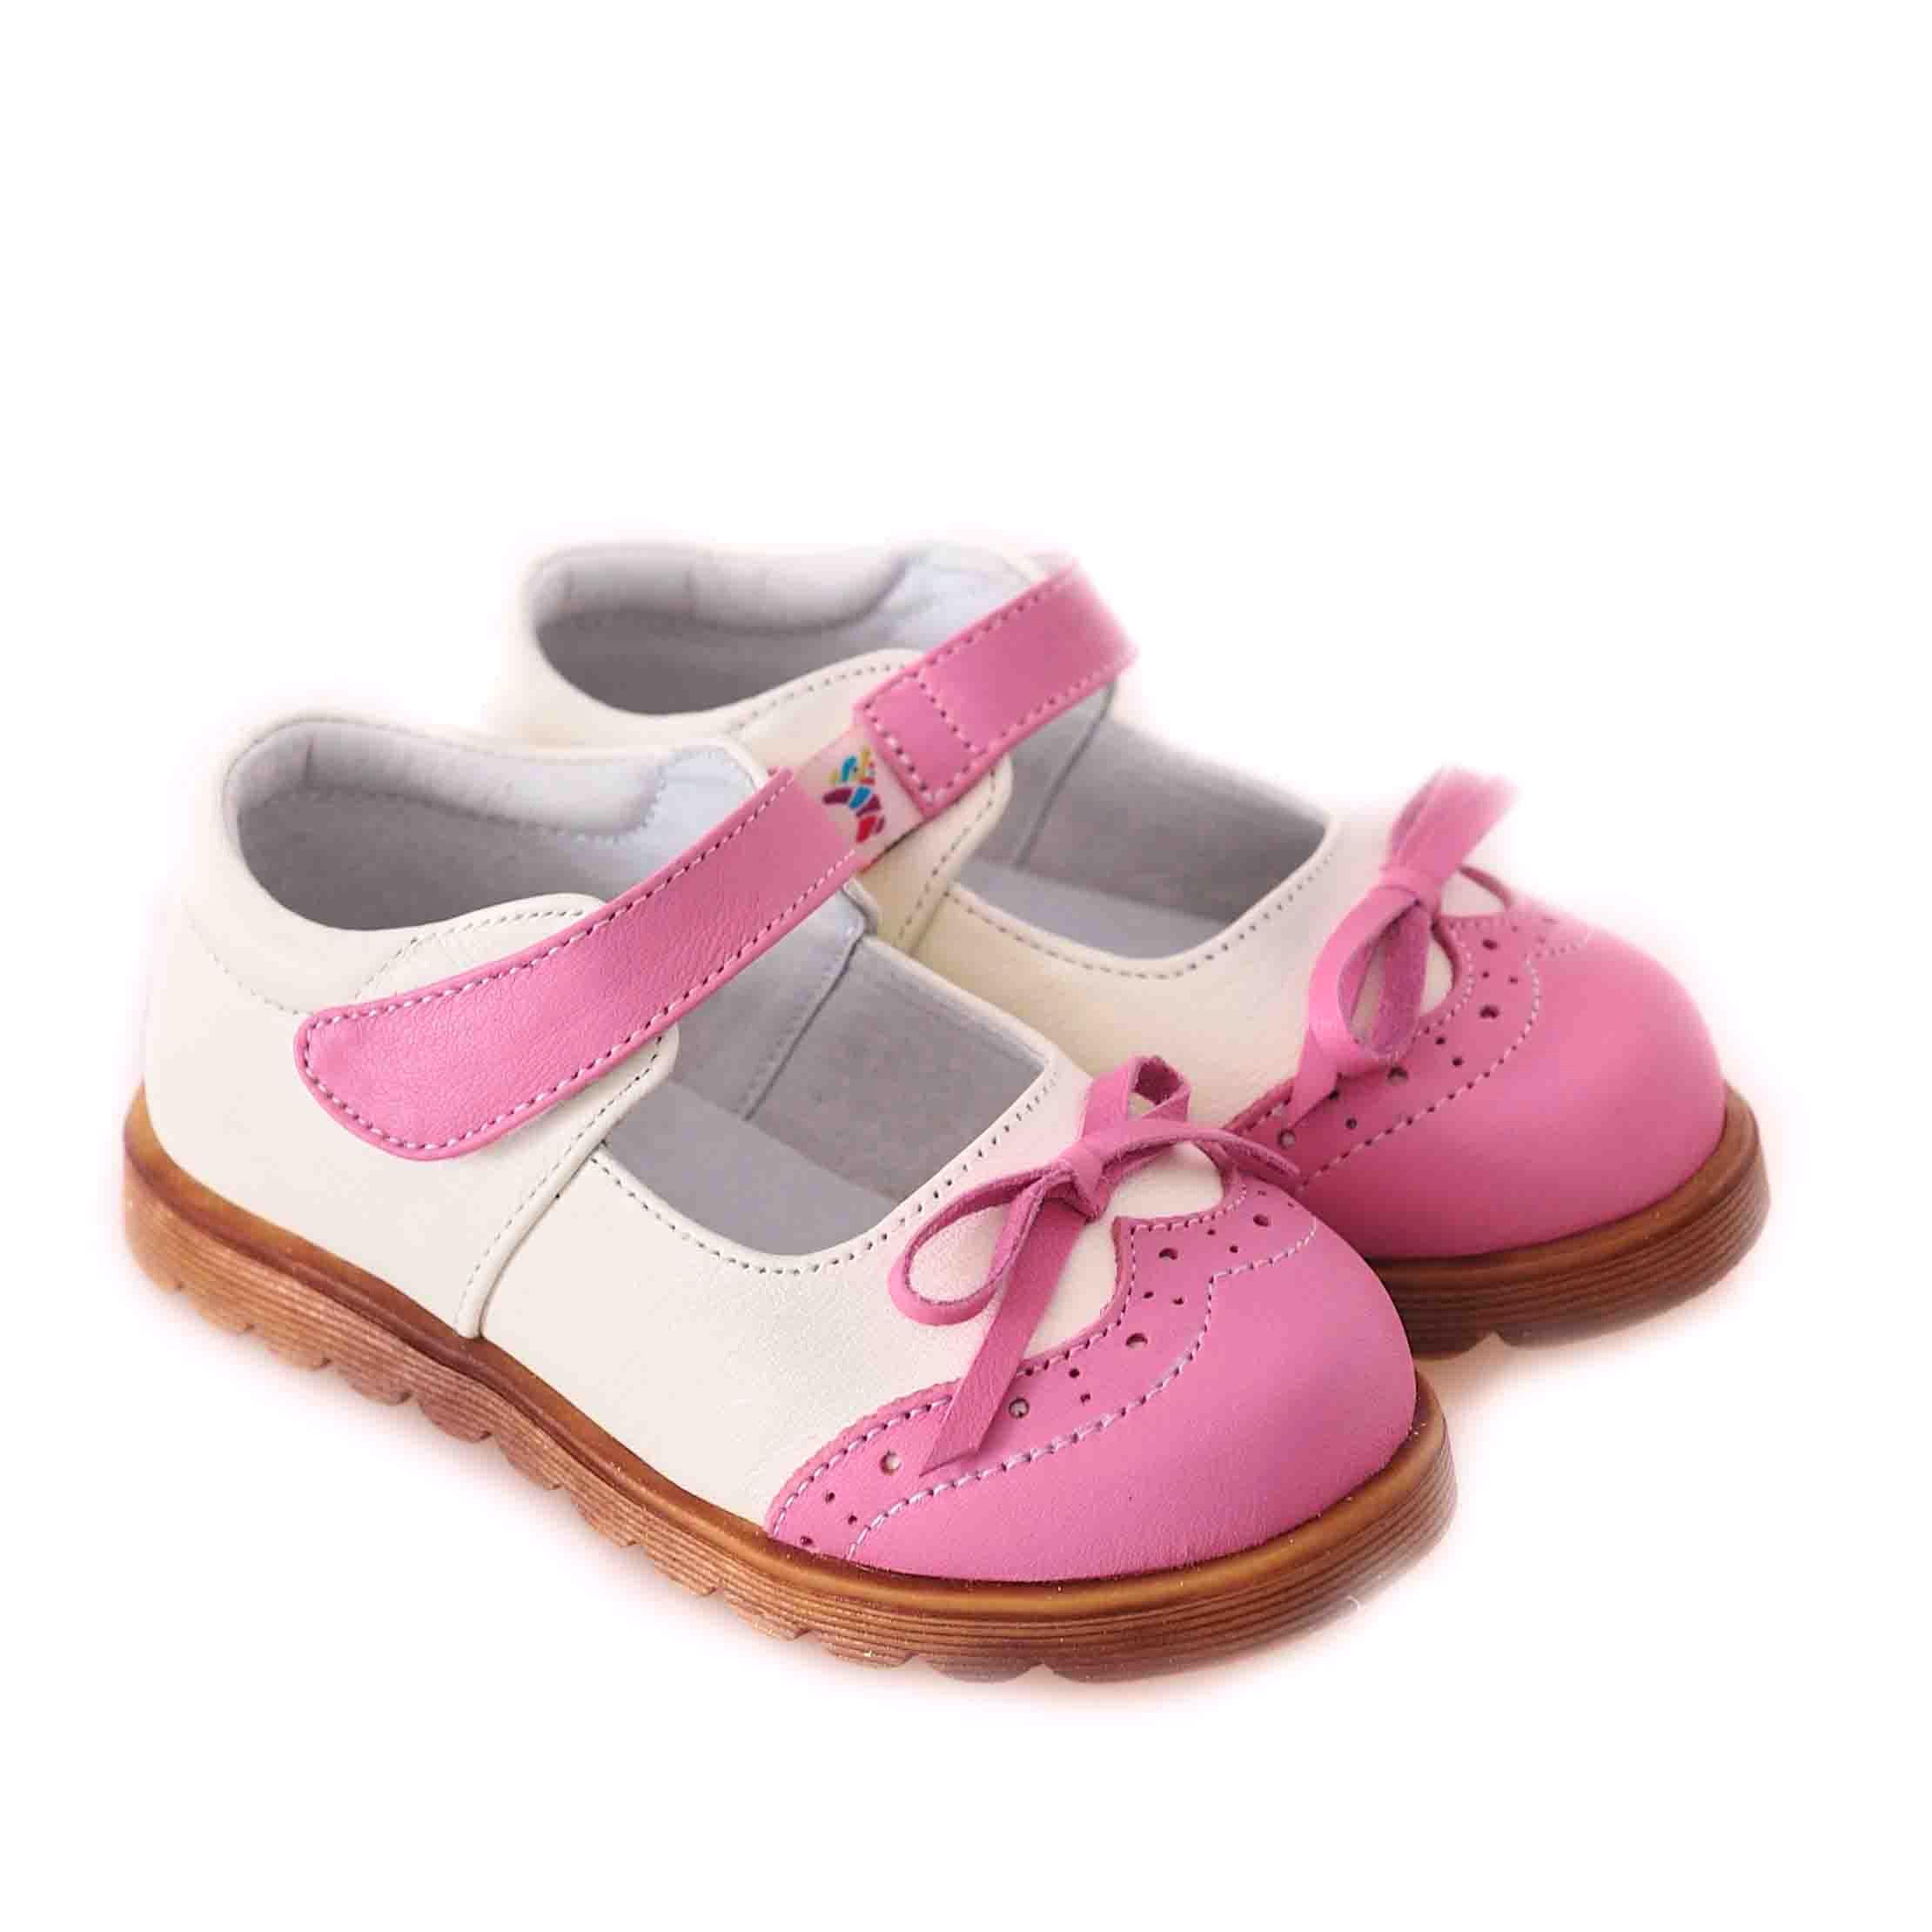 Shoes serve multiple purposes in your baby girls life. Shoes are functional and help support your baby girl as she starts to crawl, walk, skip, twirl and play. Shoes .